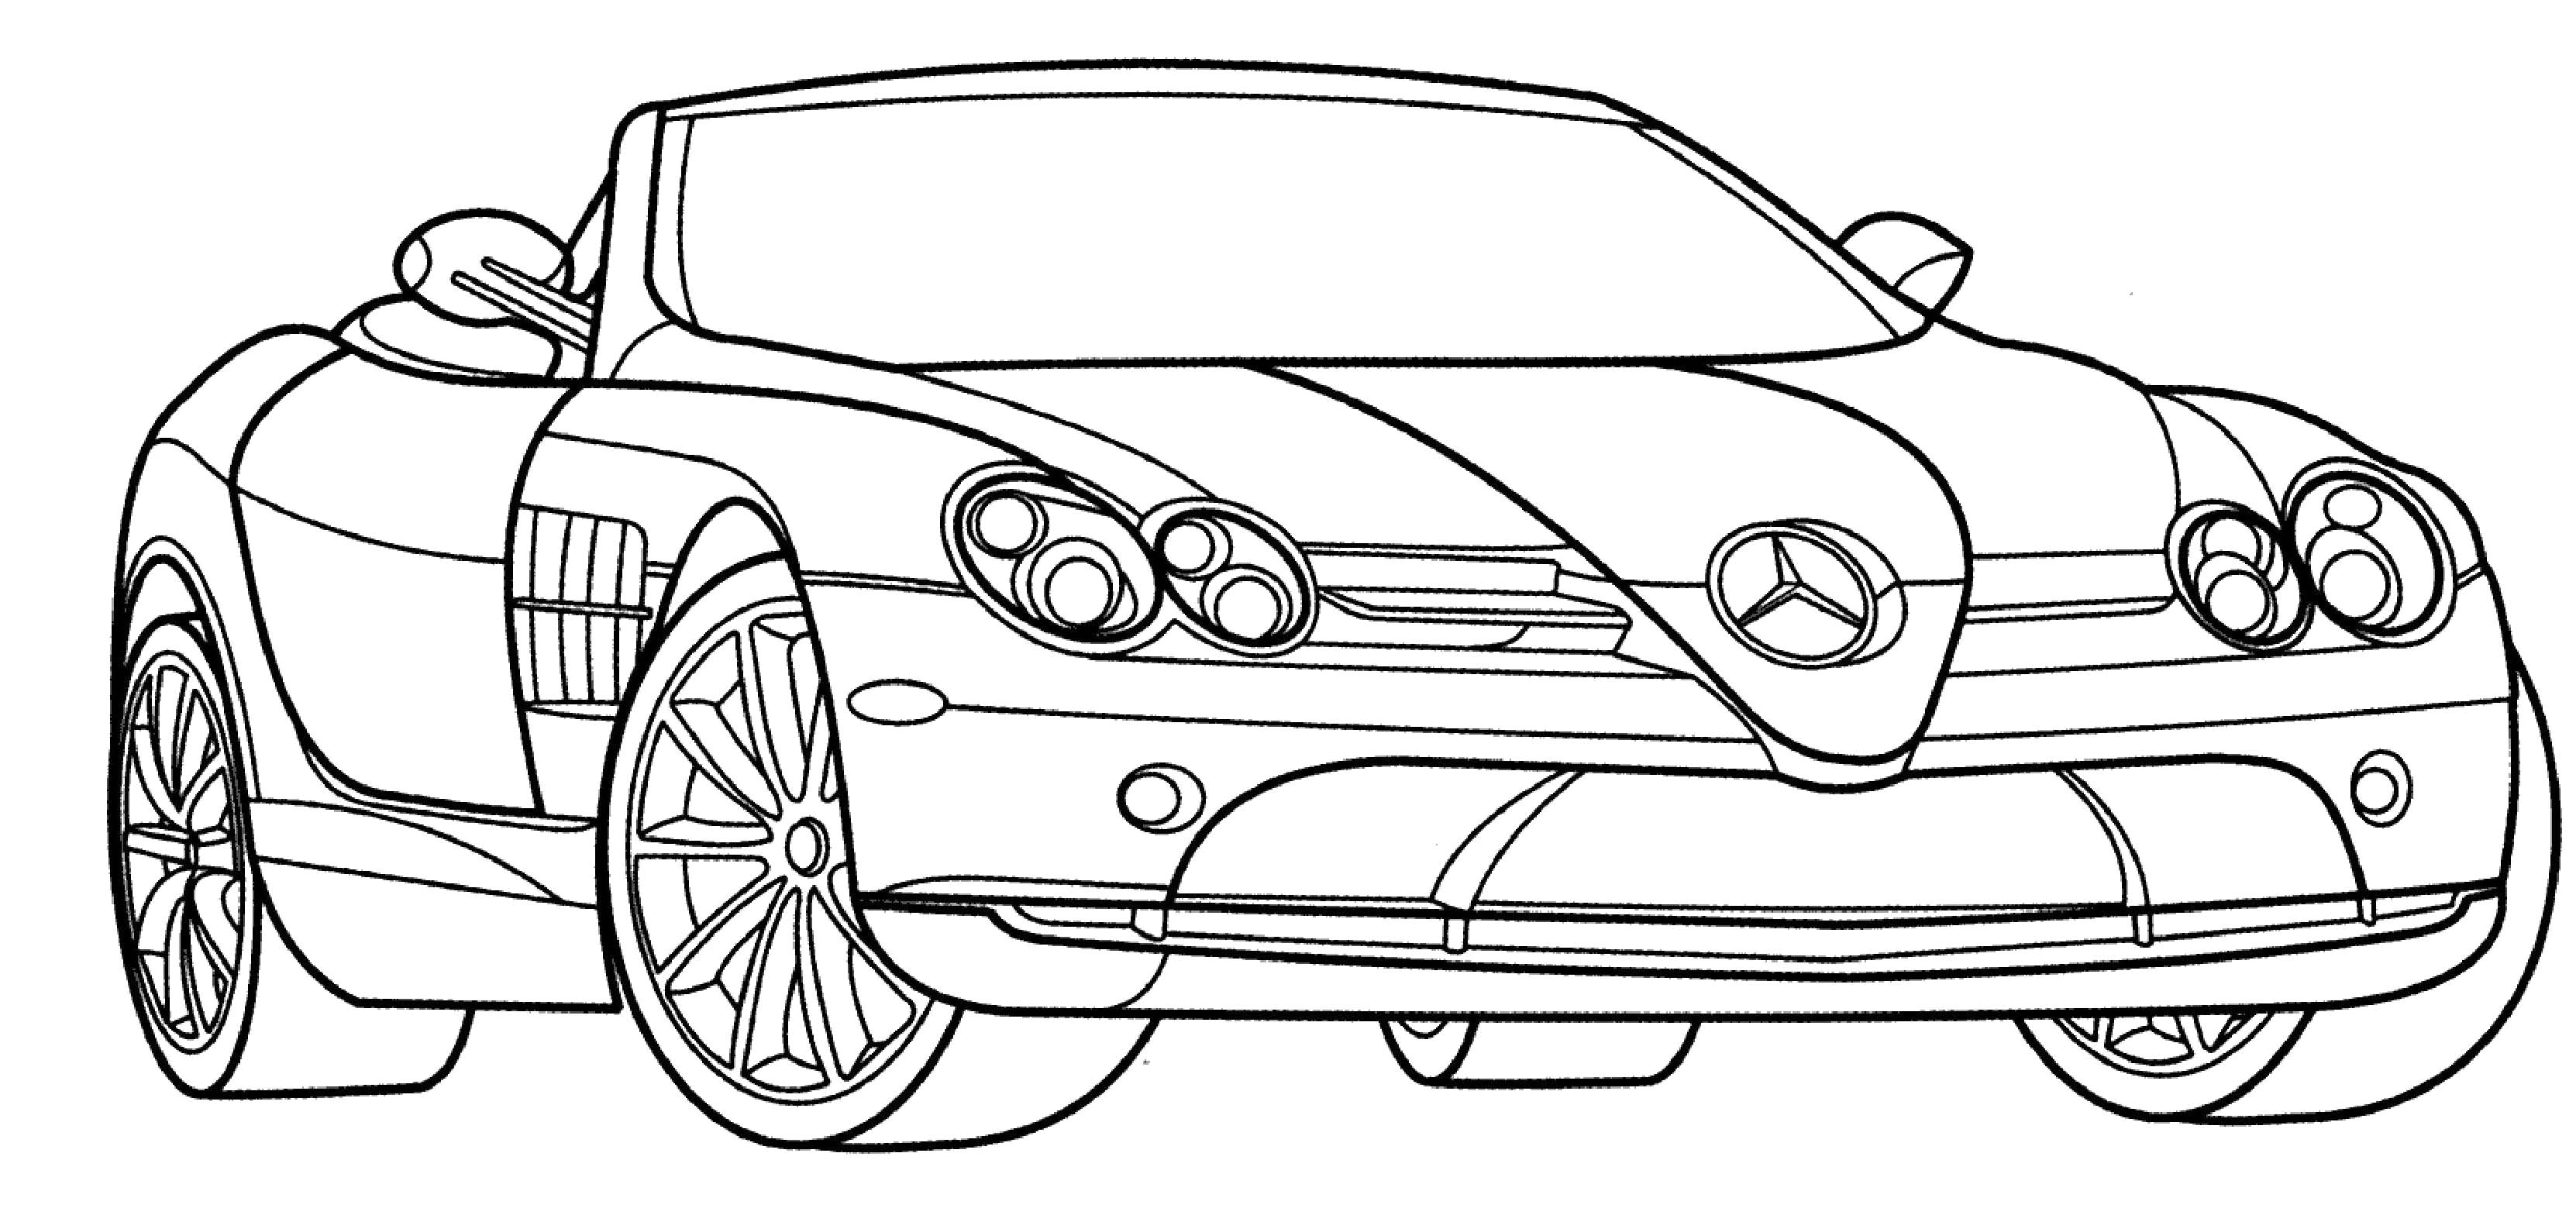 Auto Ausmalbilder Gratis : Car Drawing Pictures At Getdrawings Com Free For Personal Use Car